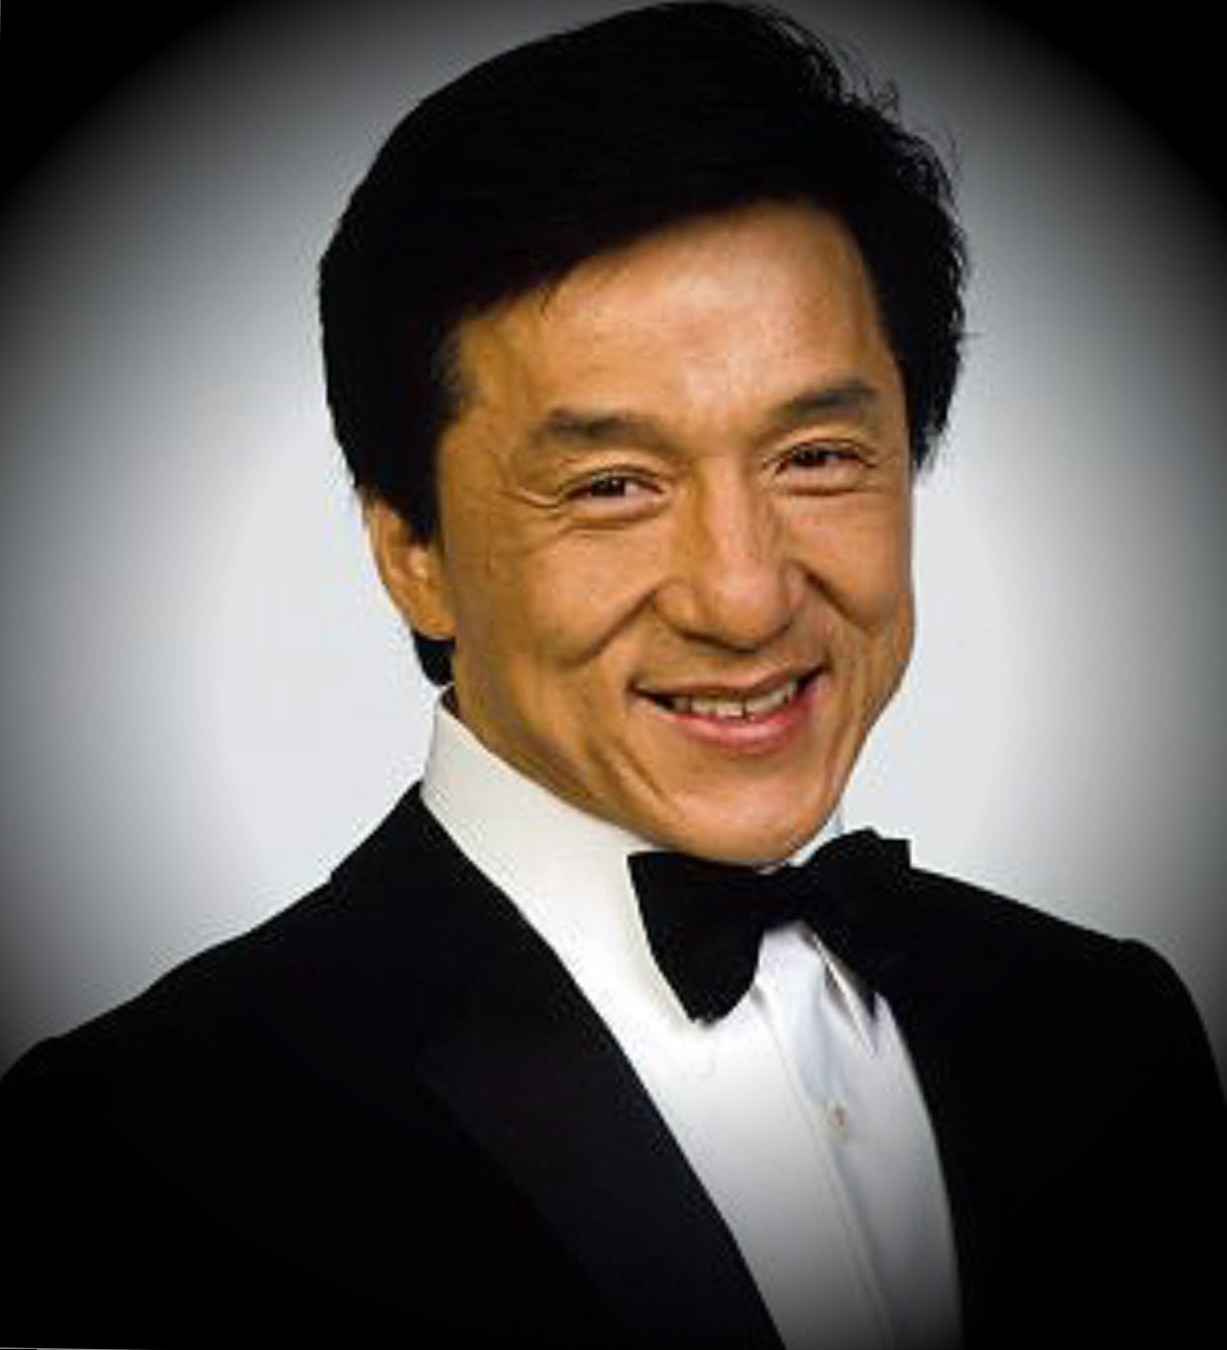 Celebrity Jackie Chan - Weight, Height and Age: http://starschanges.com/jackie-chan-weight-height-and-age/